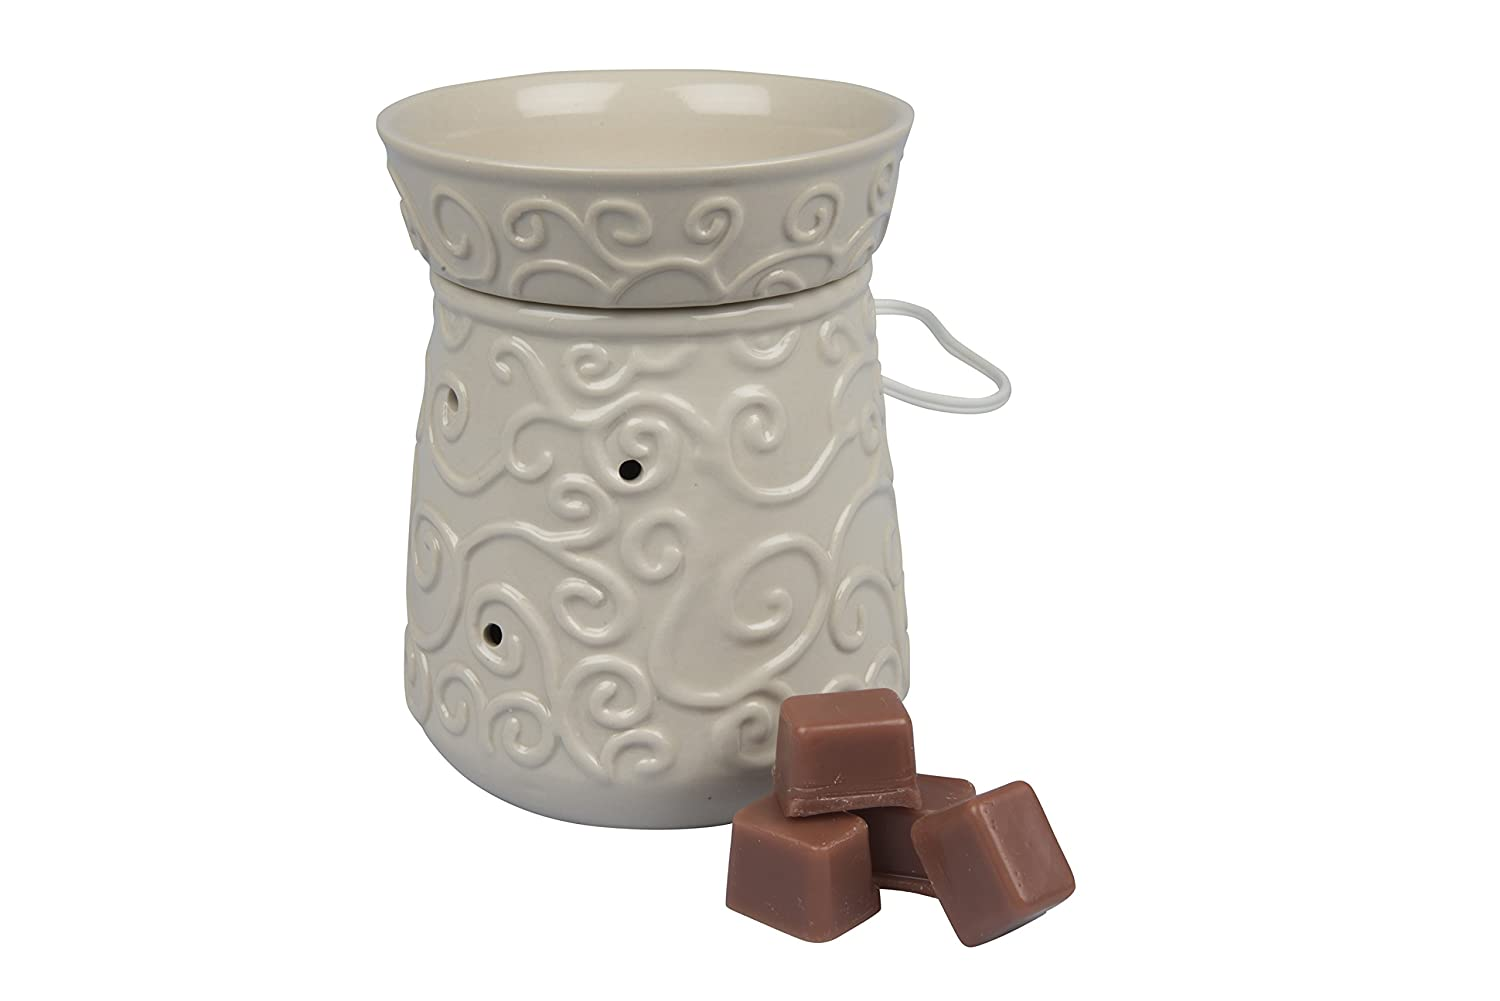 "Deco Electric Candle Warmer, Wax & Tart Warmer, Includes 4 Wax Cubes and Halogen Bulb (4.5""x4.5""x6"")"